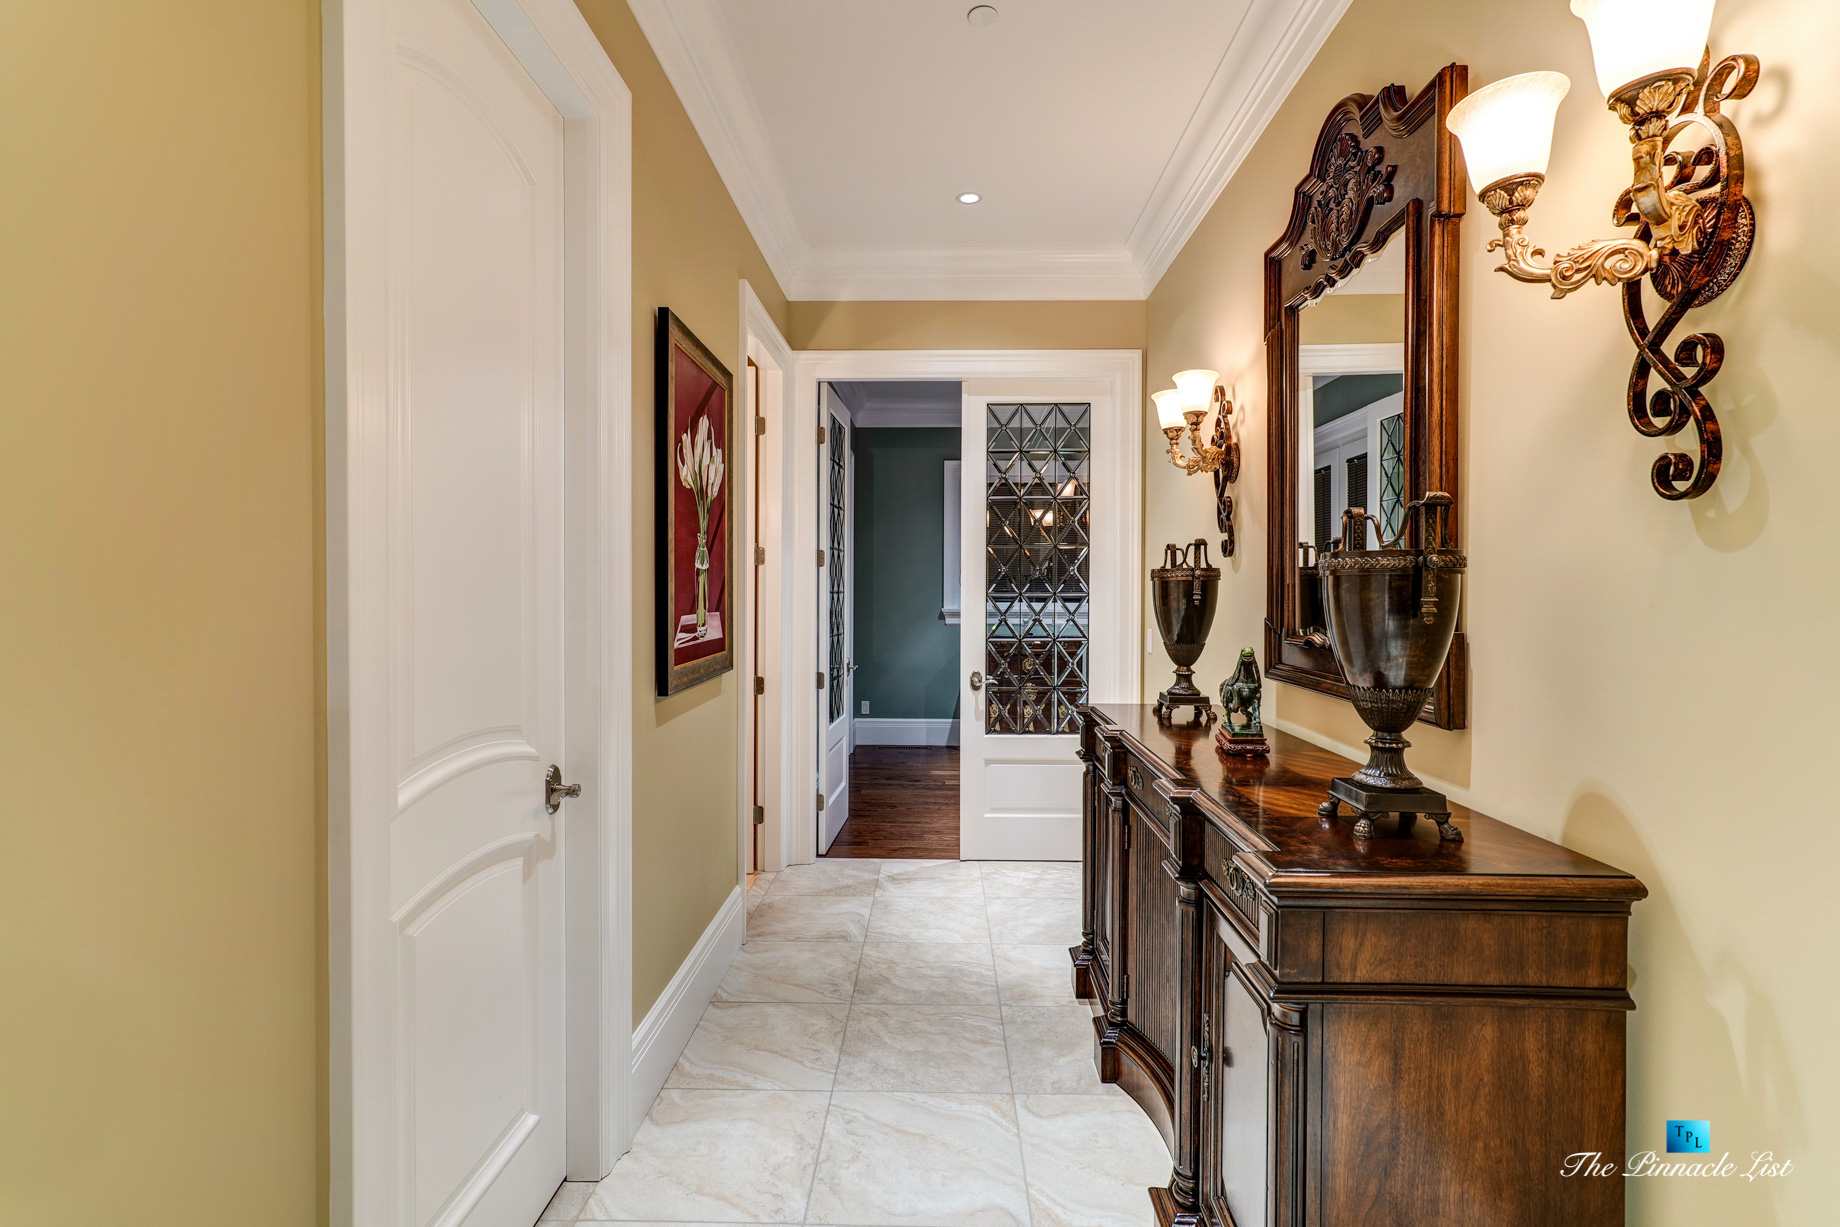 2057 Ridge Mountain Drive, Anmore, BC, Canada - Hallway - Luxury Real Estate - West Coast Greater Vancouver Home